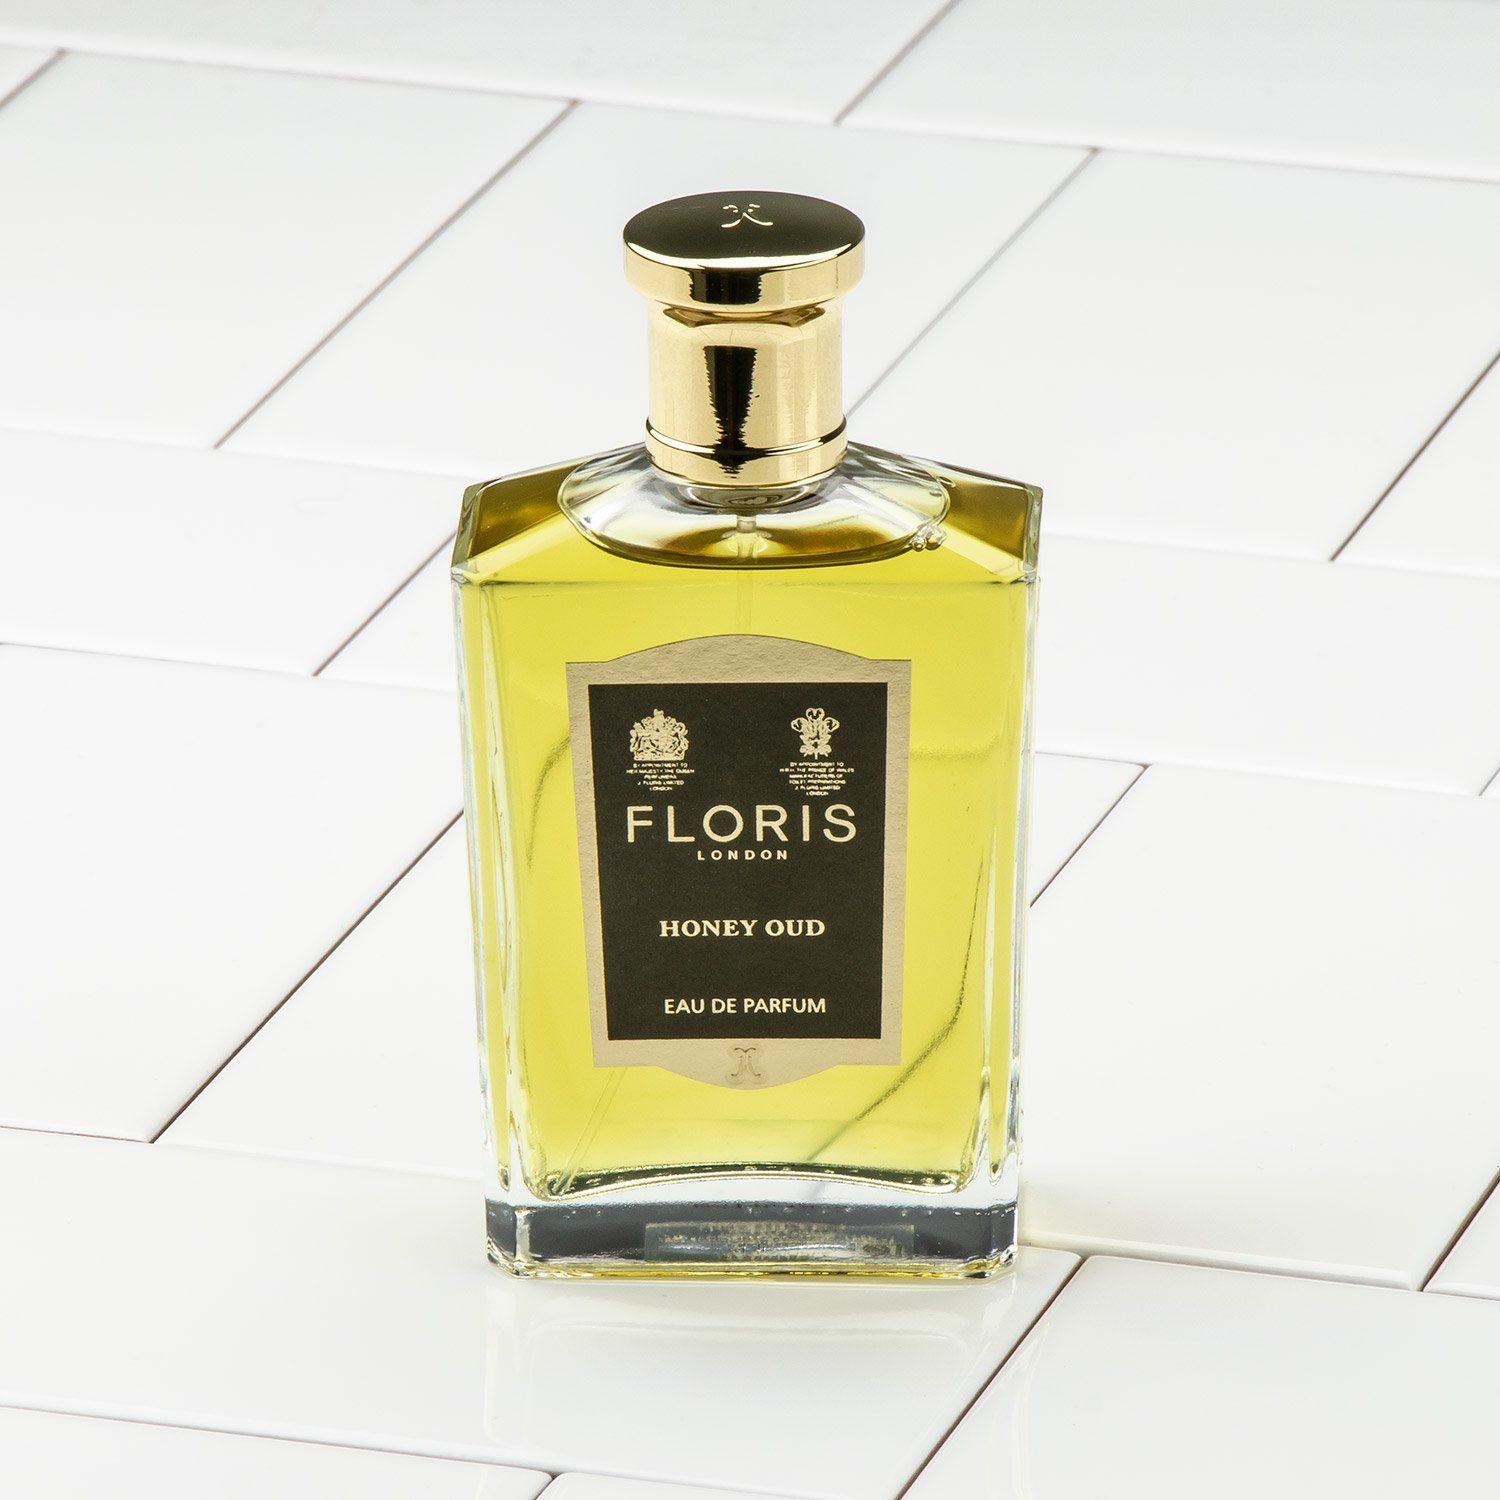 Floris Honey Oud Eau de Perfum